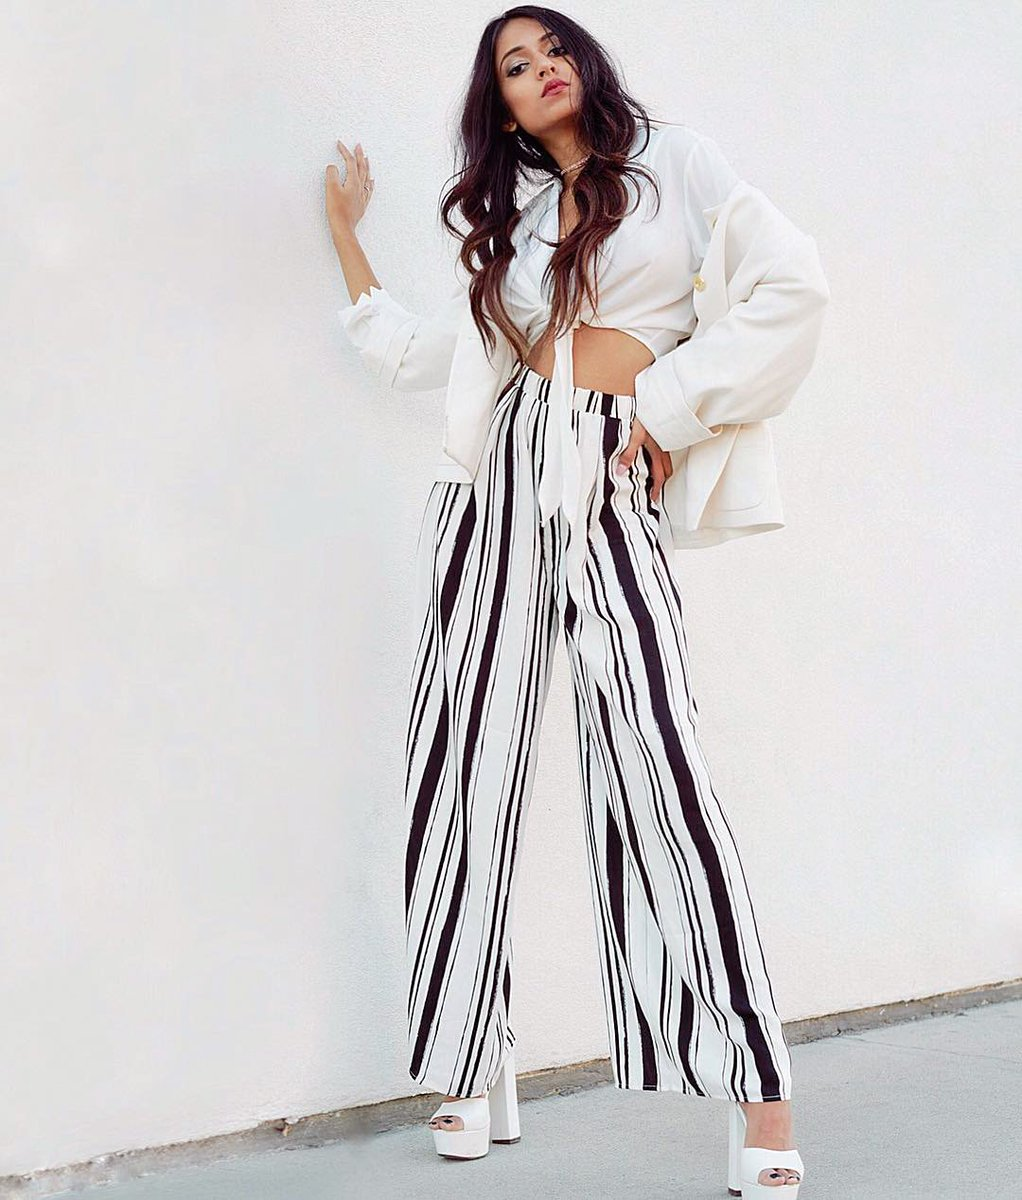 Browzzin On Twitter Vertical Lines Have Magic To Level Up Your Look Today S Ootd Is Coming From Nehavarmaa